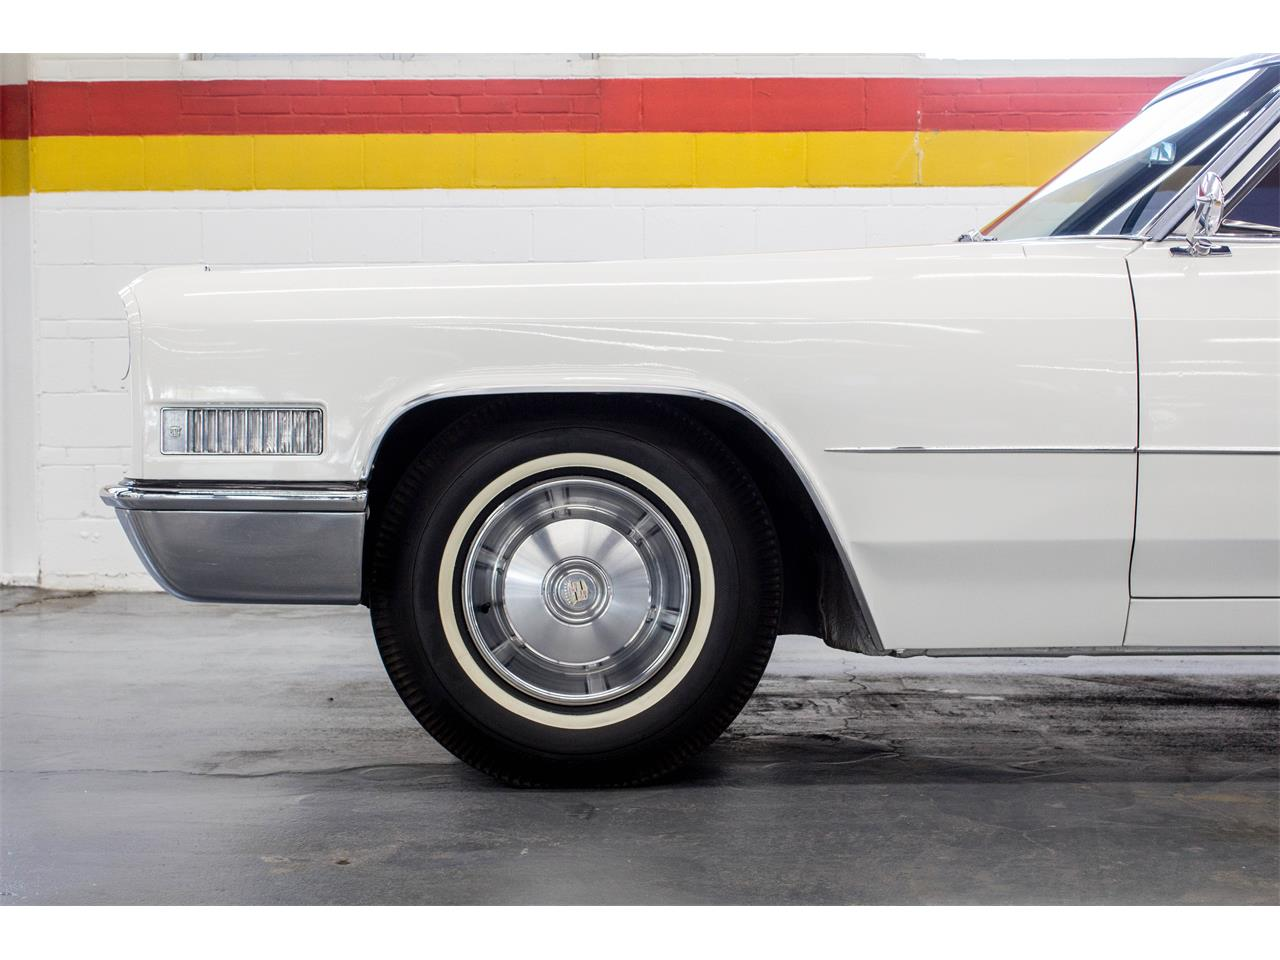 Large Picture of Classic '66 Cadillac Fleetwood Limousine - $49,995.00 Offered by John Scotti Classic Cars - NKXQ